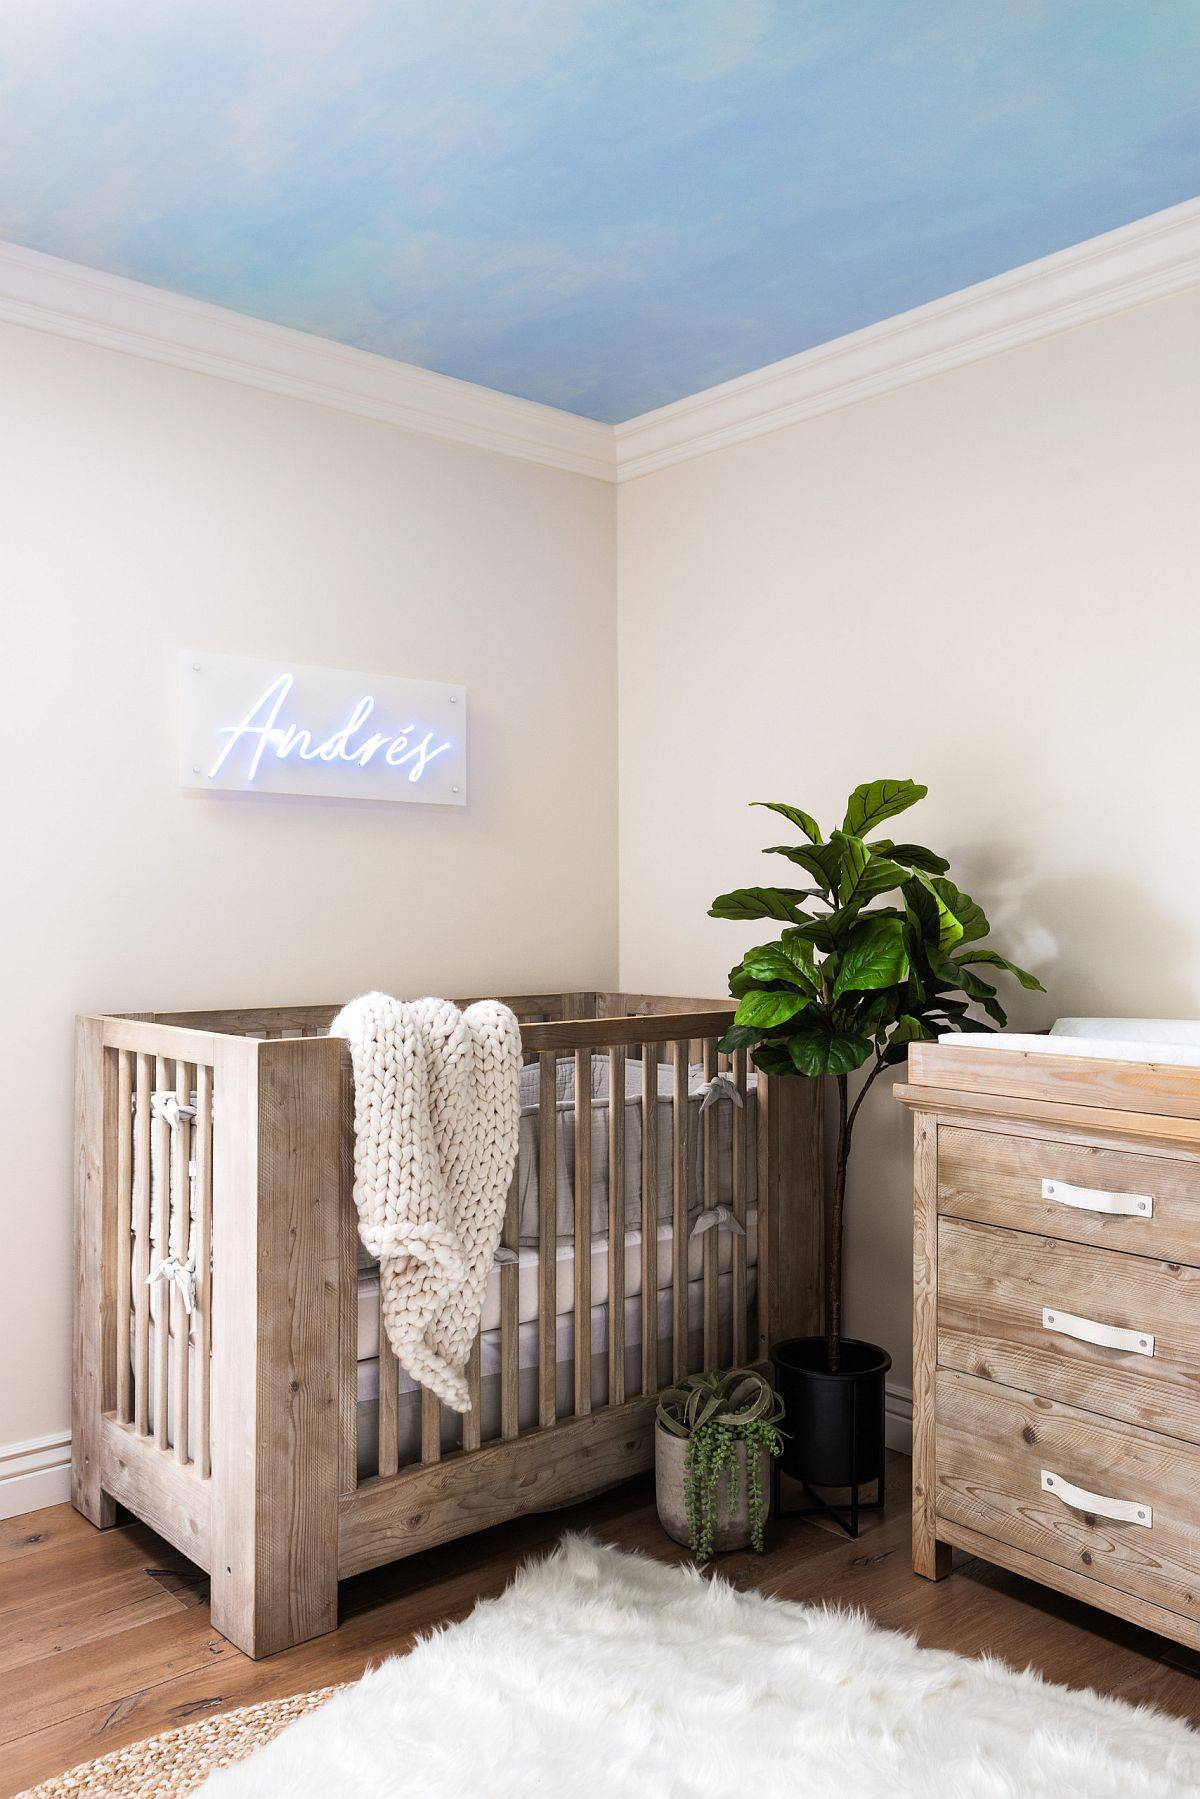 Spelling-out-the-name-of-your-little-one-in-bright-lights-for-a-trendier-nursery-61276